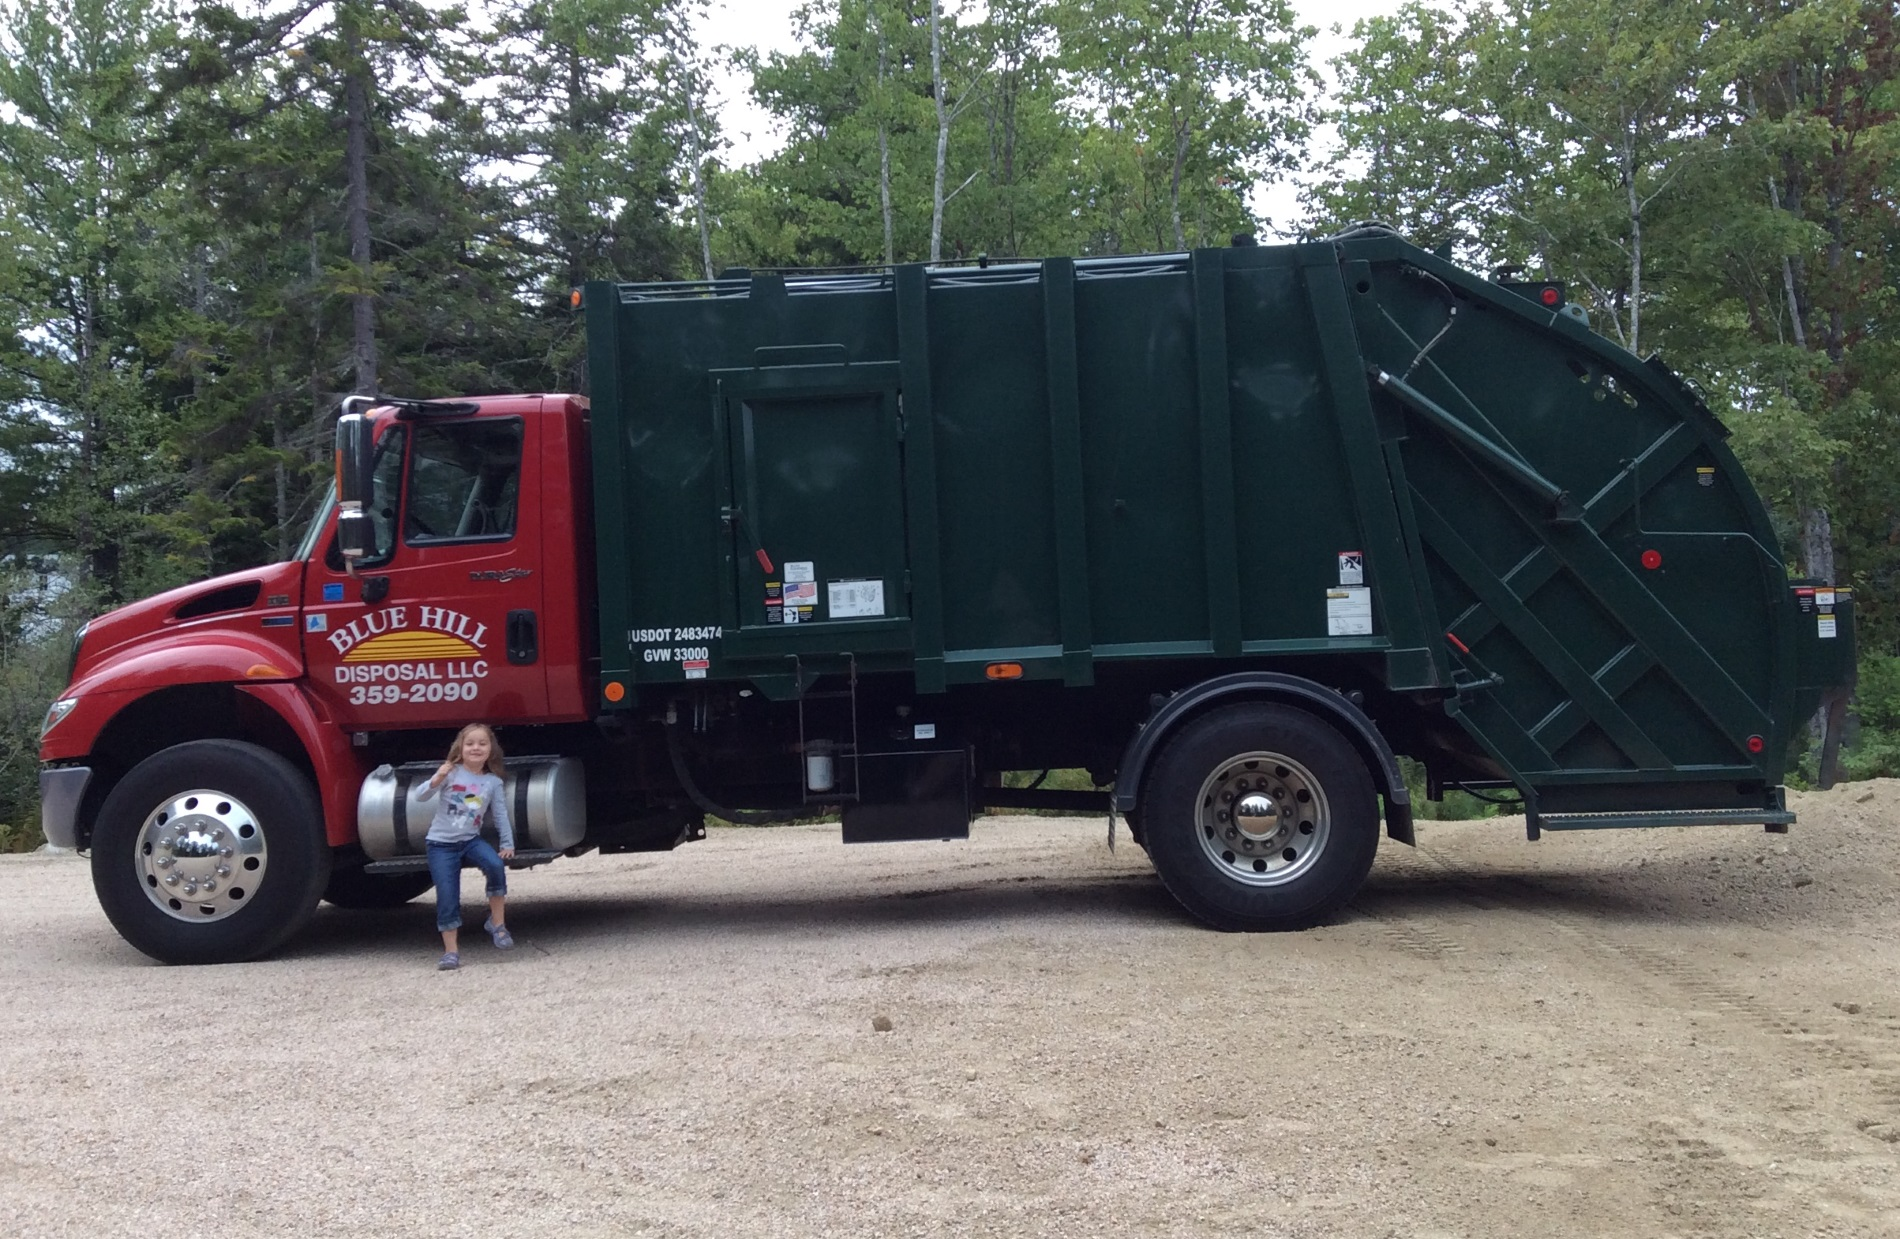 Garbage disposal service serving Blue Hill Maine